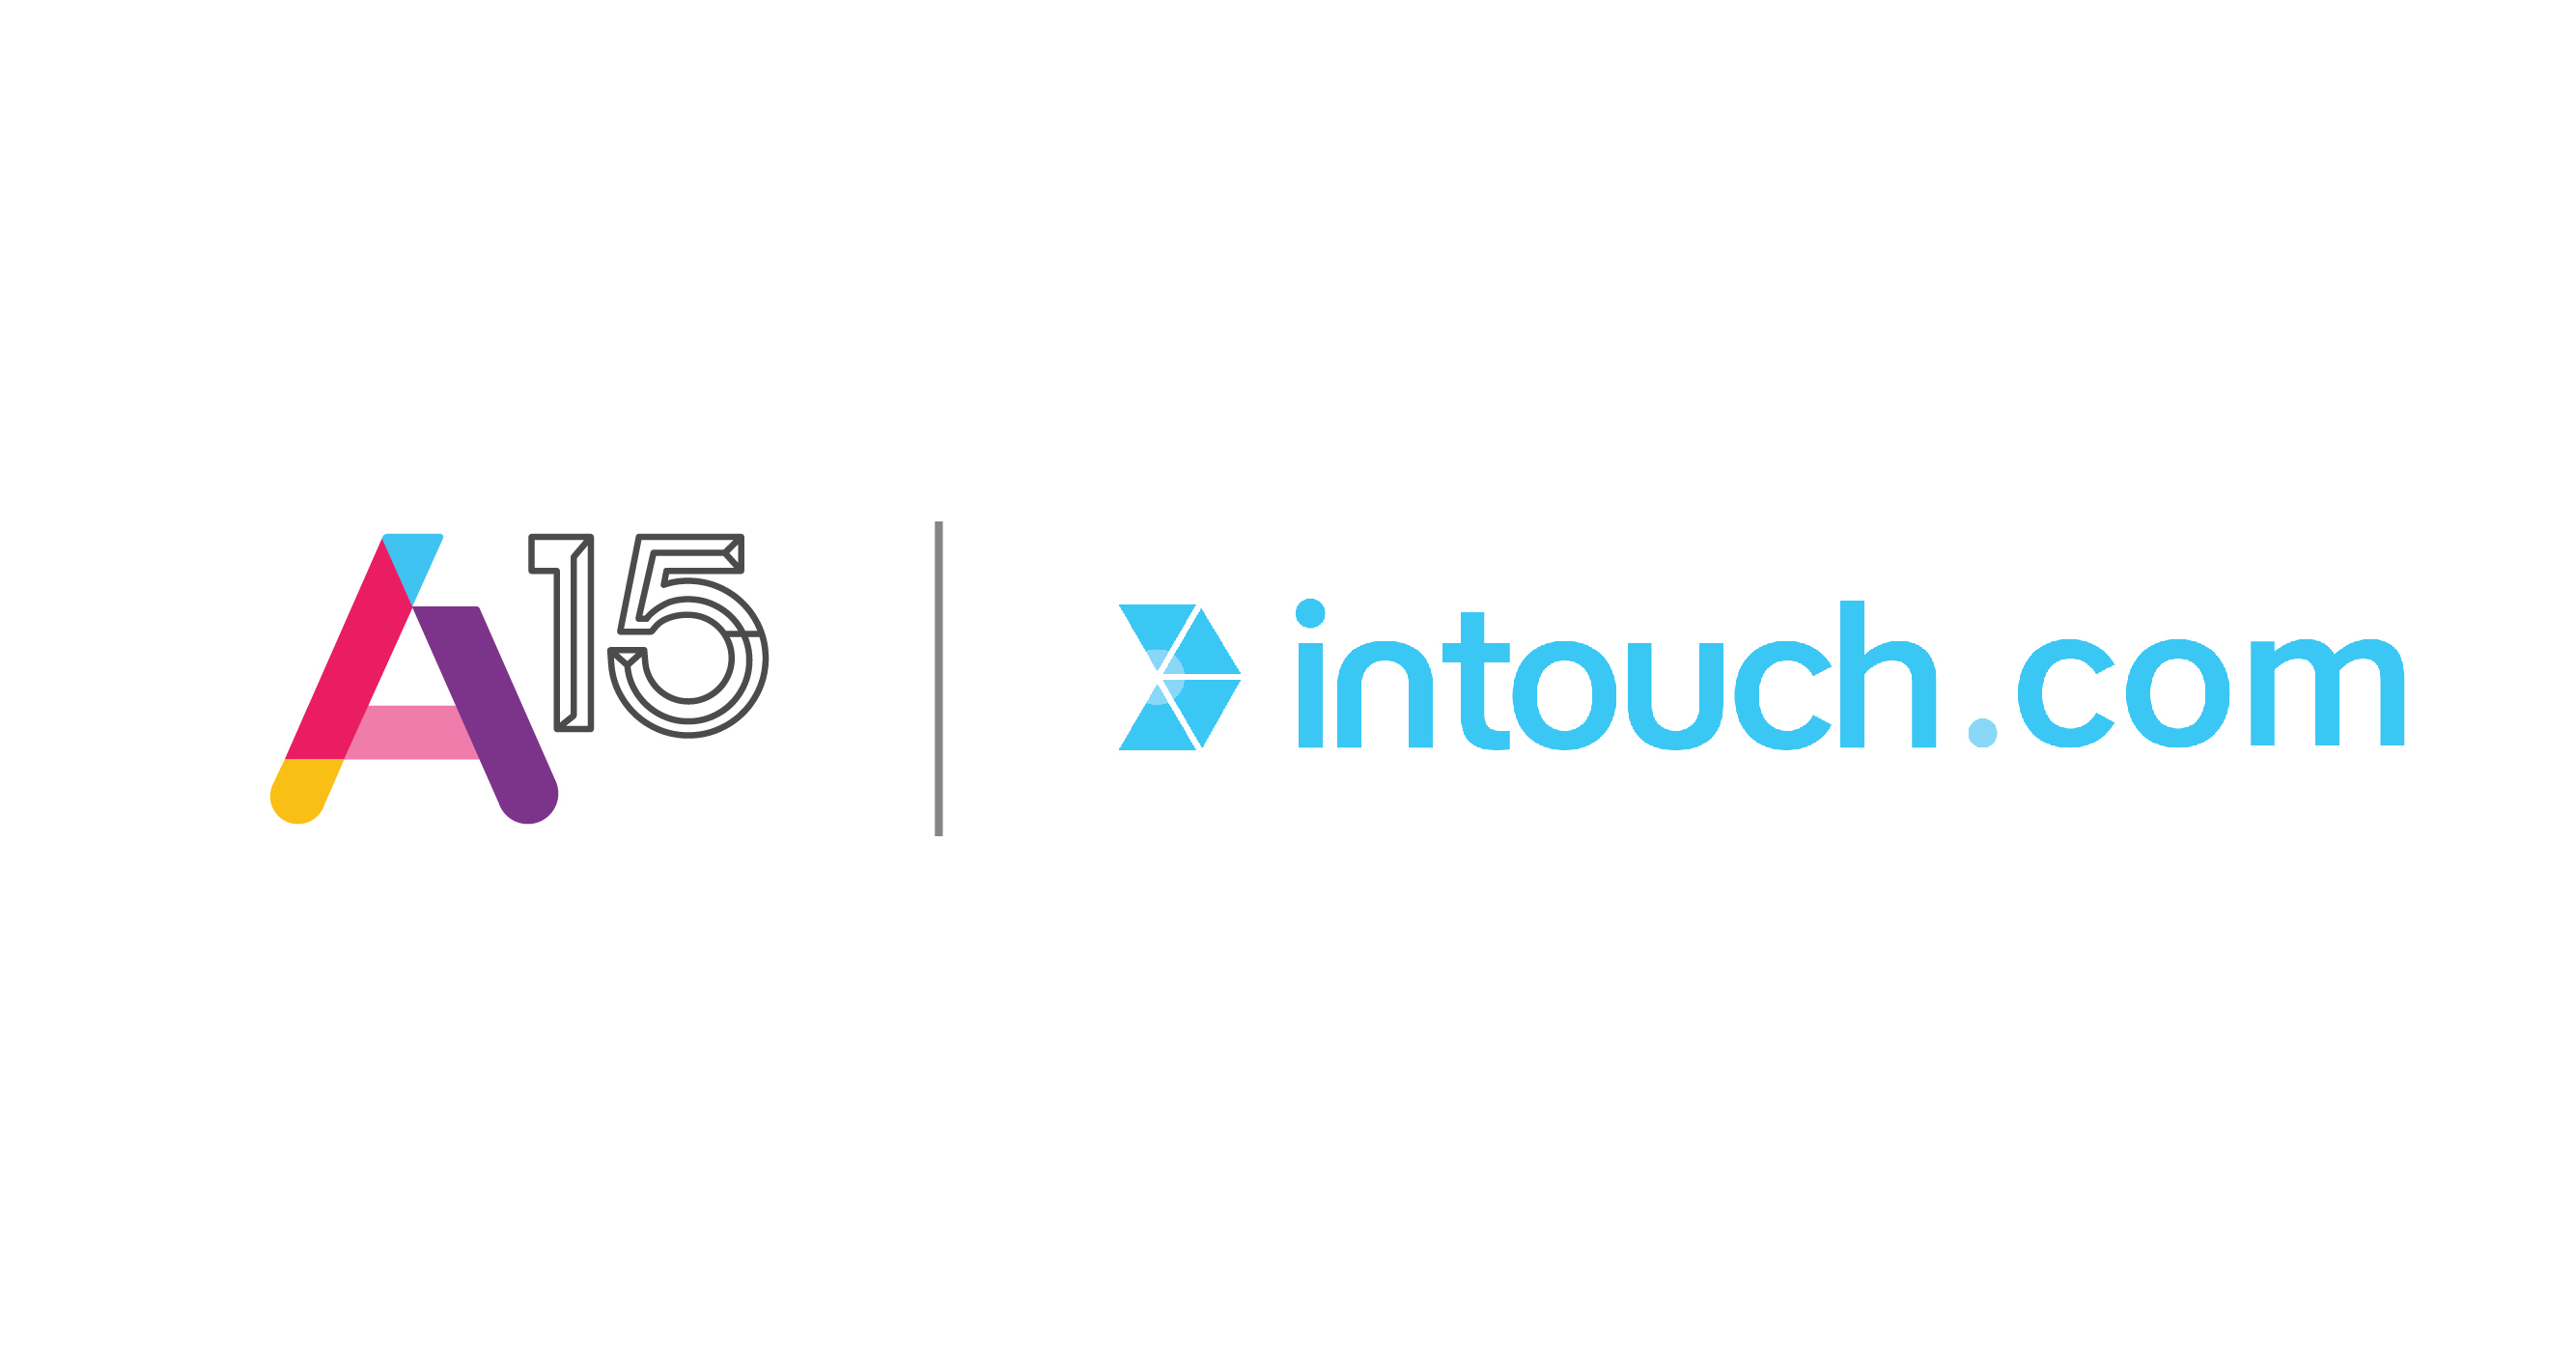 A15 Doubles Down on Intouch.com Investment to Redefine Retail Experiences for MENA Shoppers